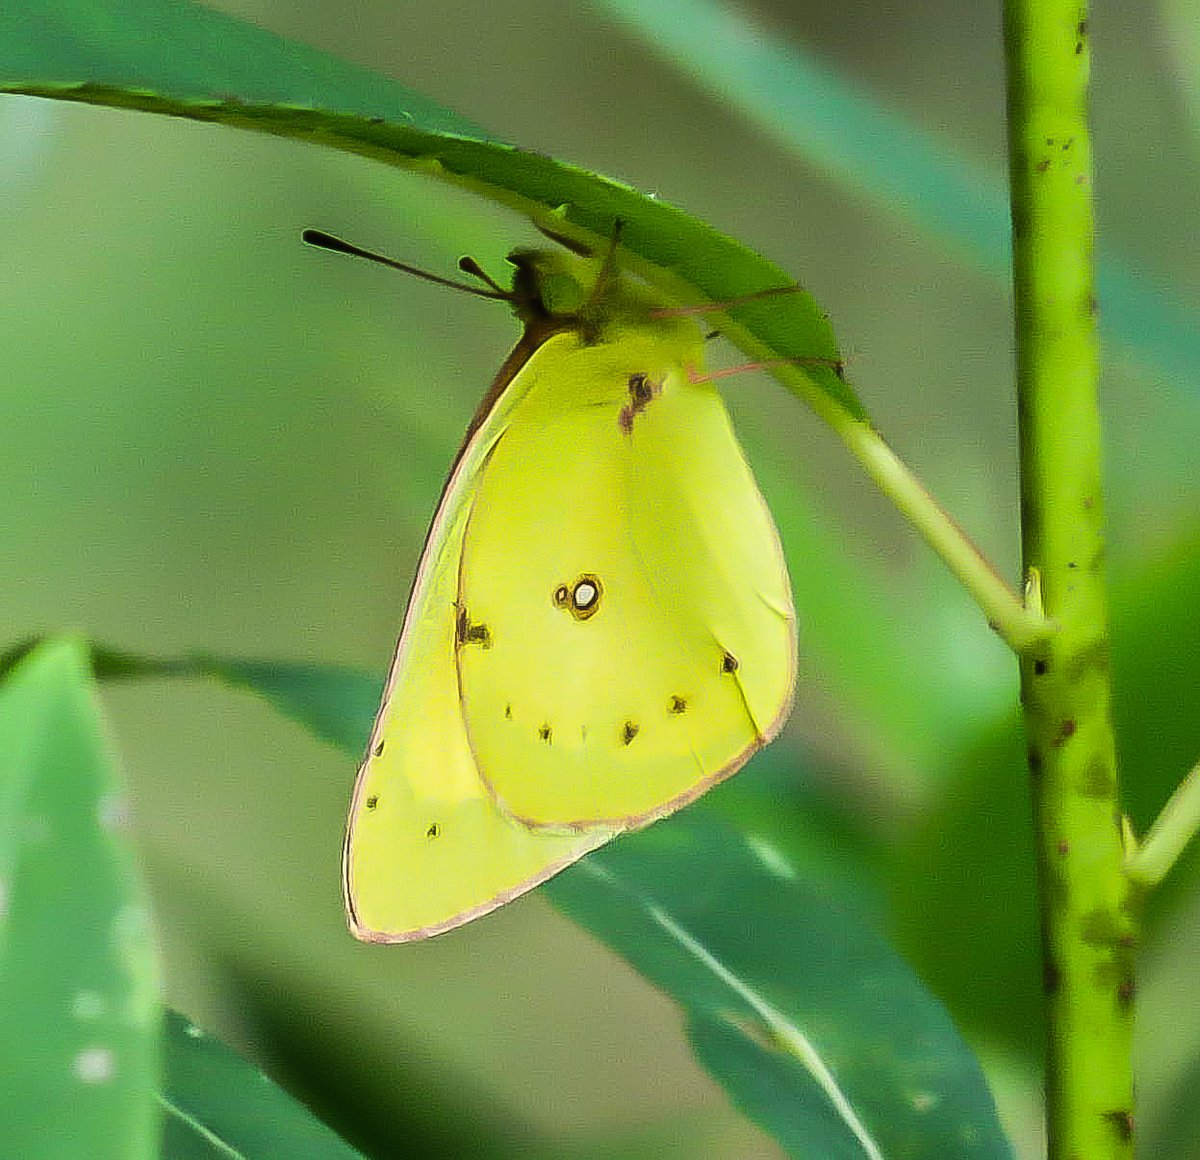 14. Clouded Sulfur Butterfly